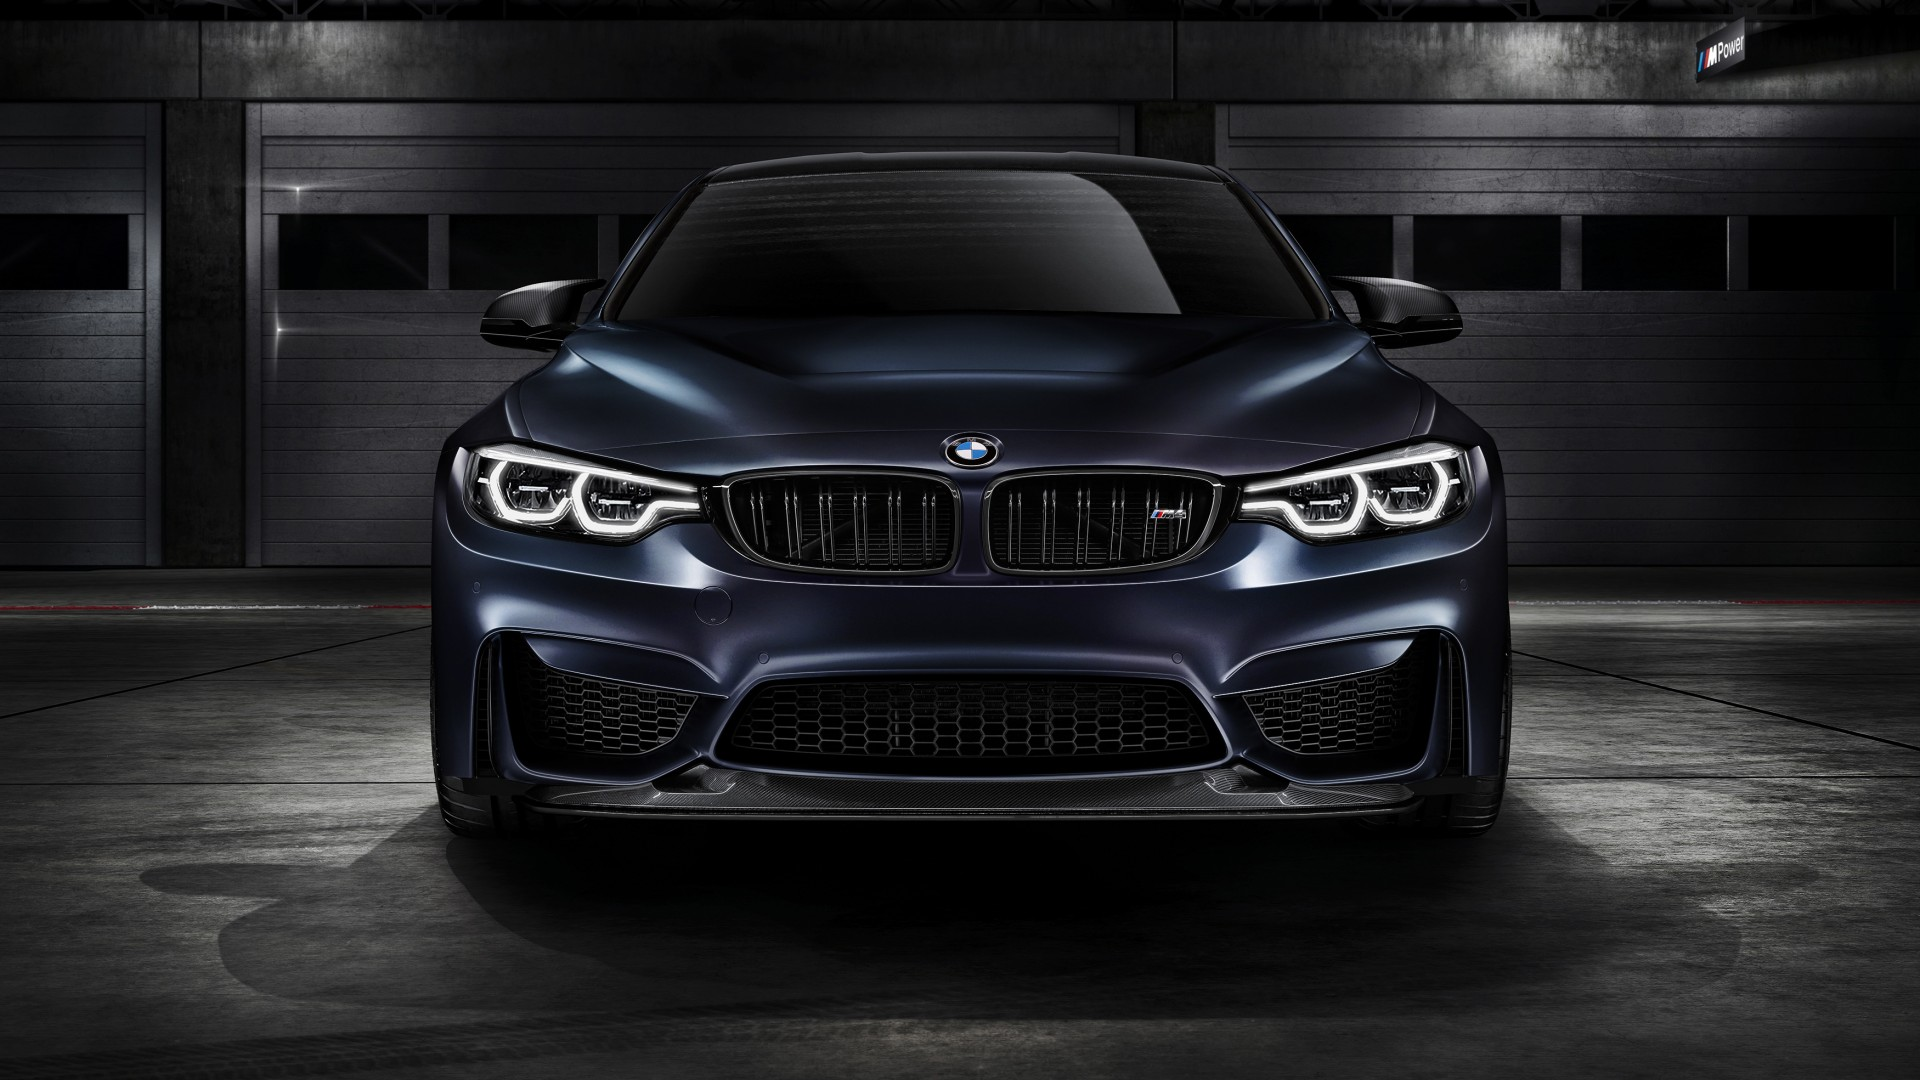 BMW M4 Coupe >> BMW M4 GTS 2018 2 Wallpaper | HD Car Wallpapers | ID #8090